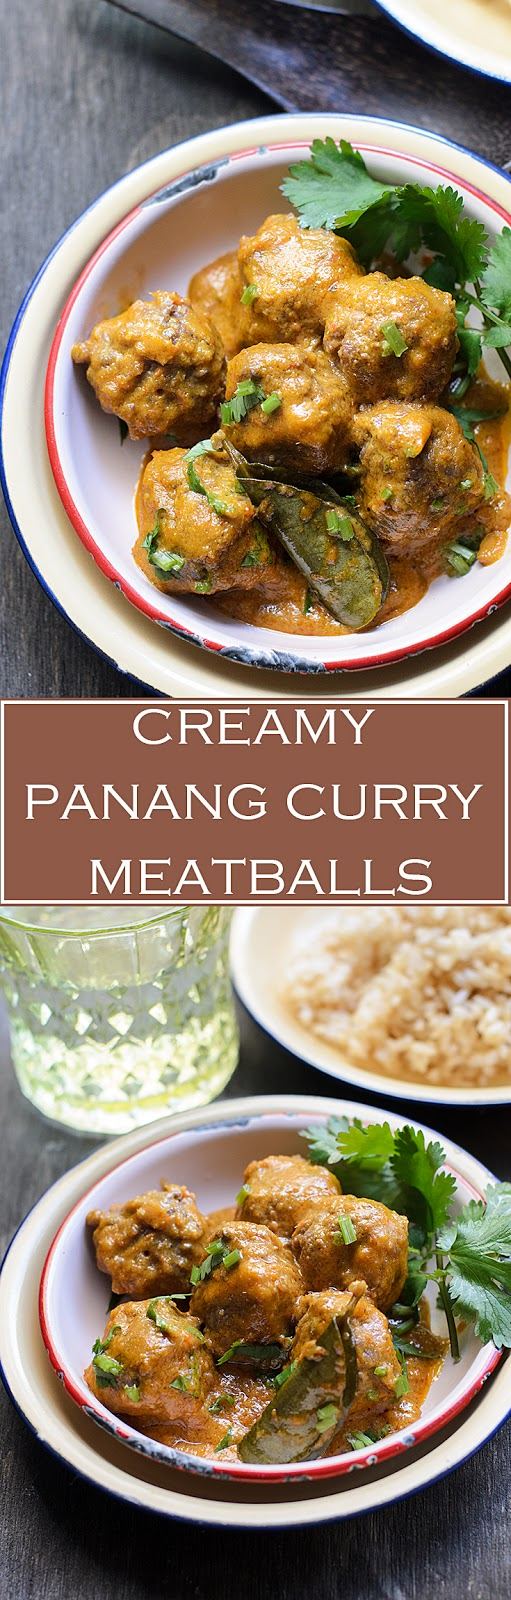 Meatballs in creamy nutty red curry sauce